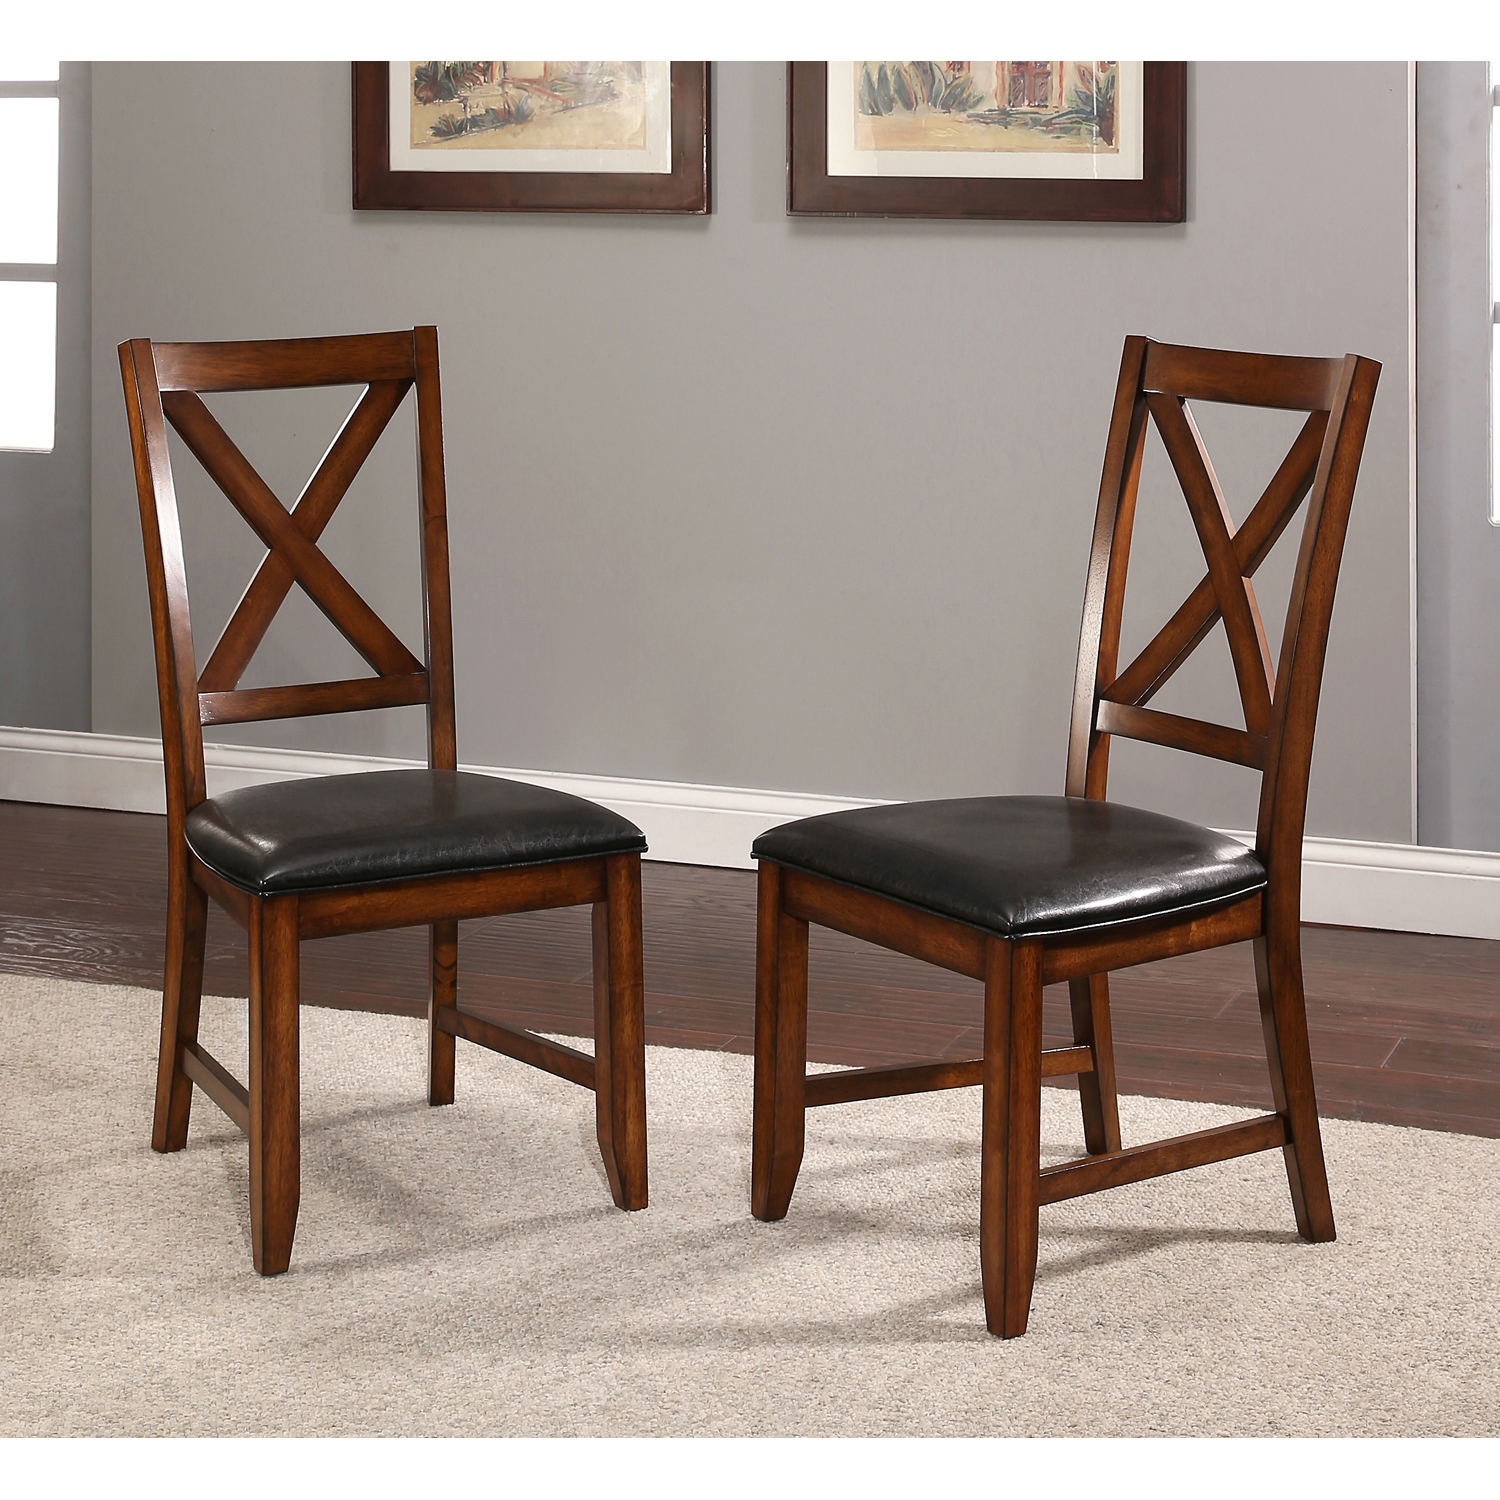 Basil Dining Chair Set of 2